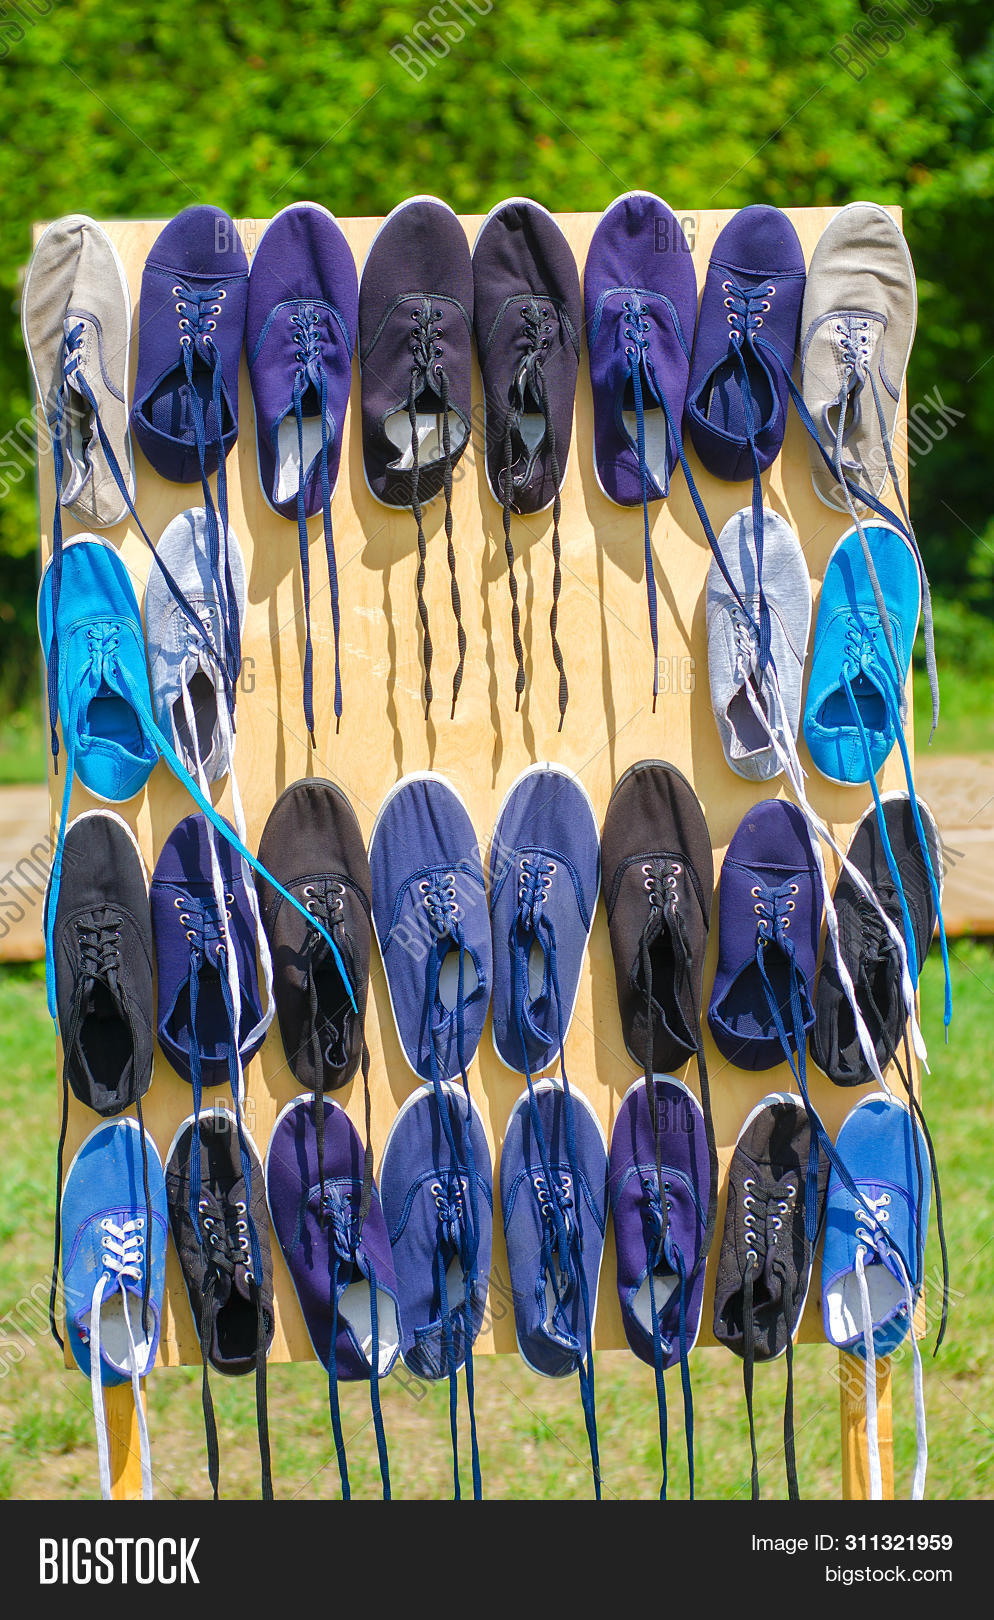 Sport Shoes Hanging On Image \u0026 Photo (Free Trial)